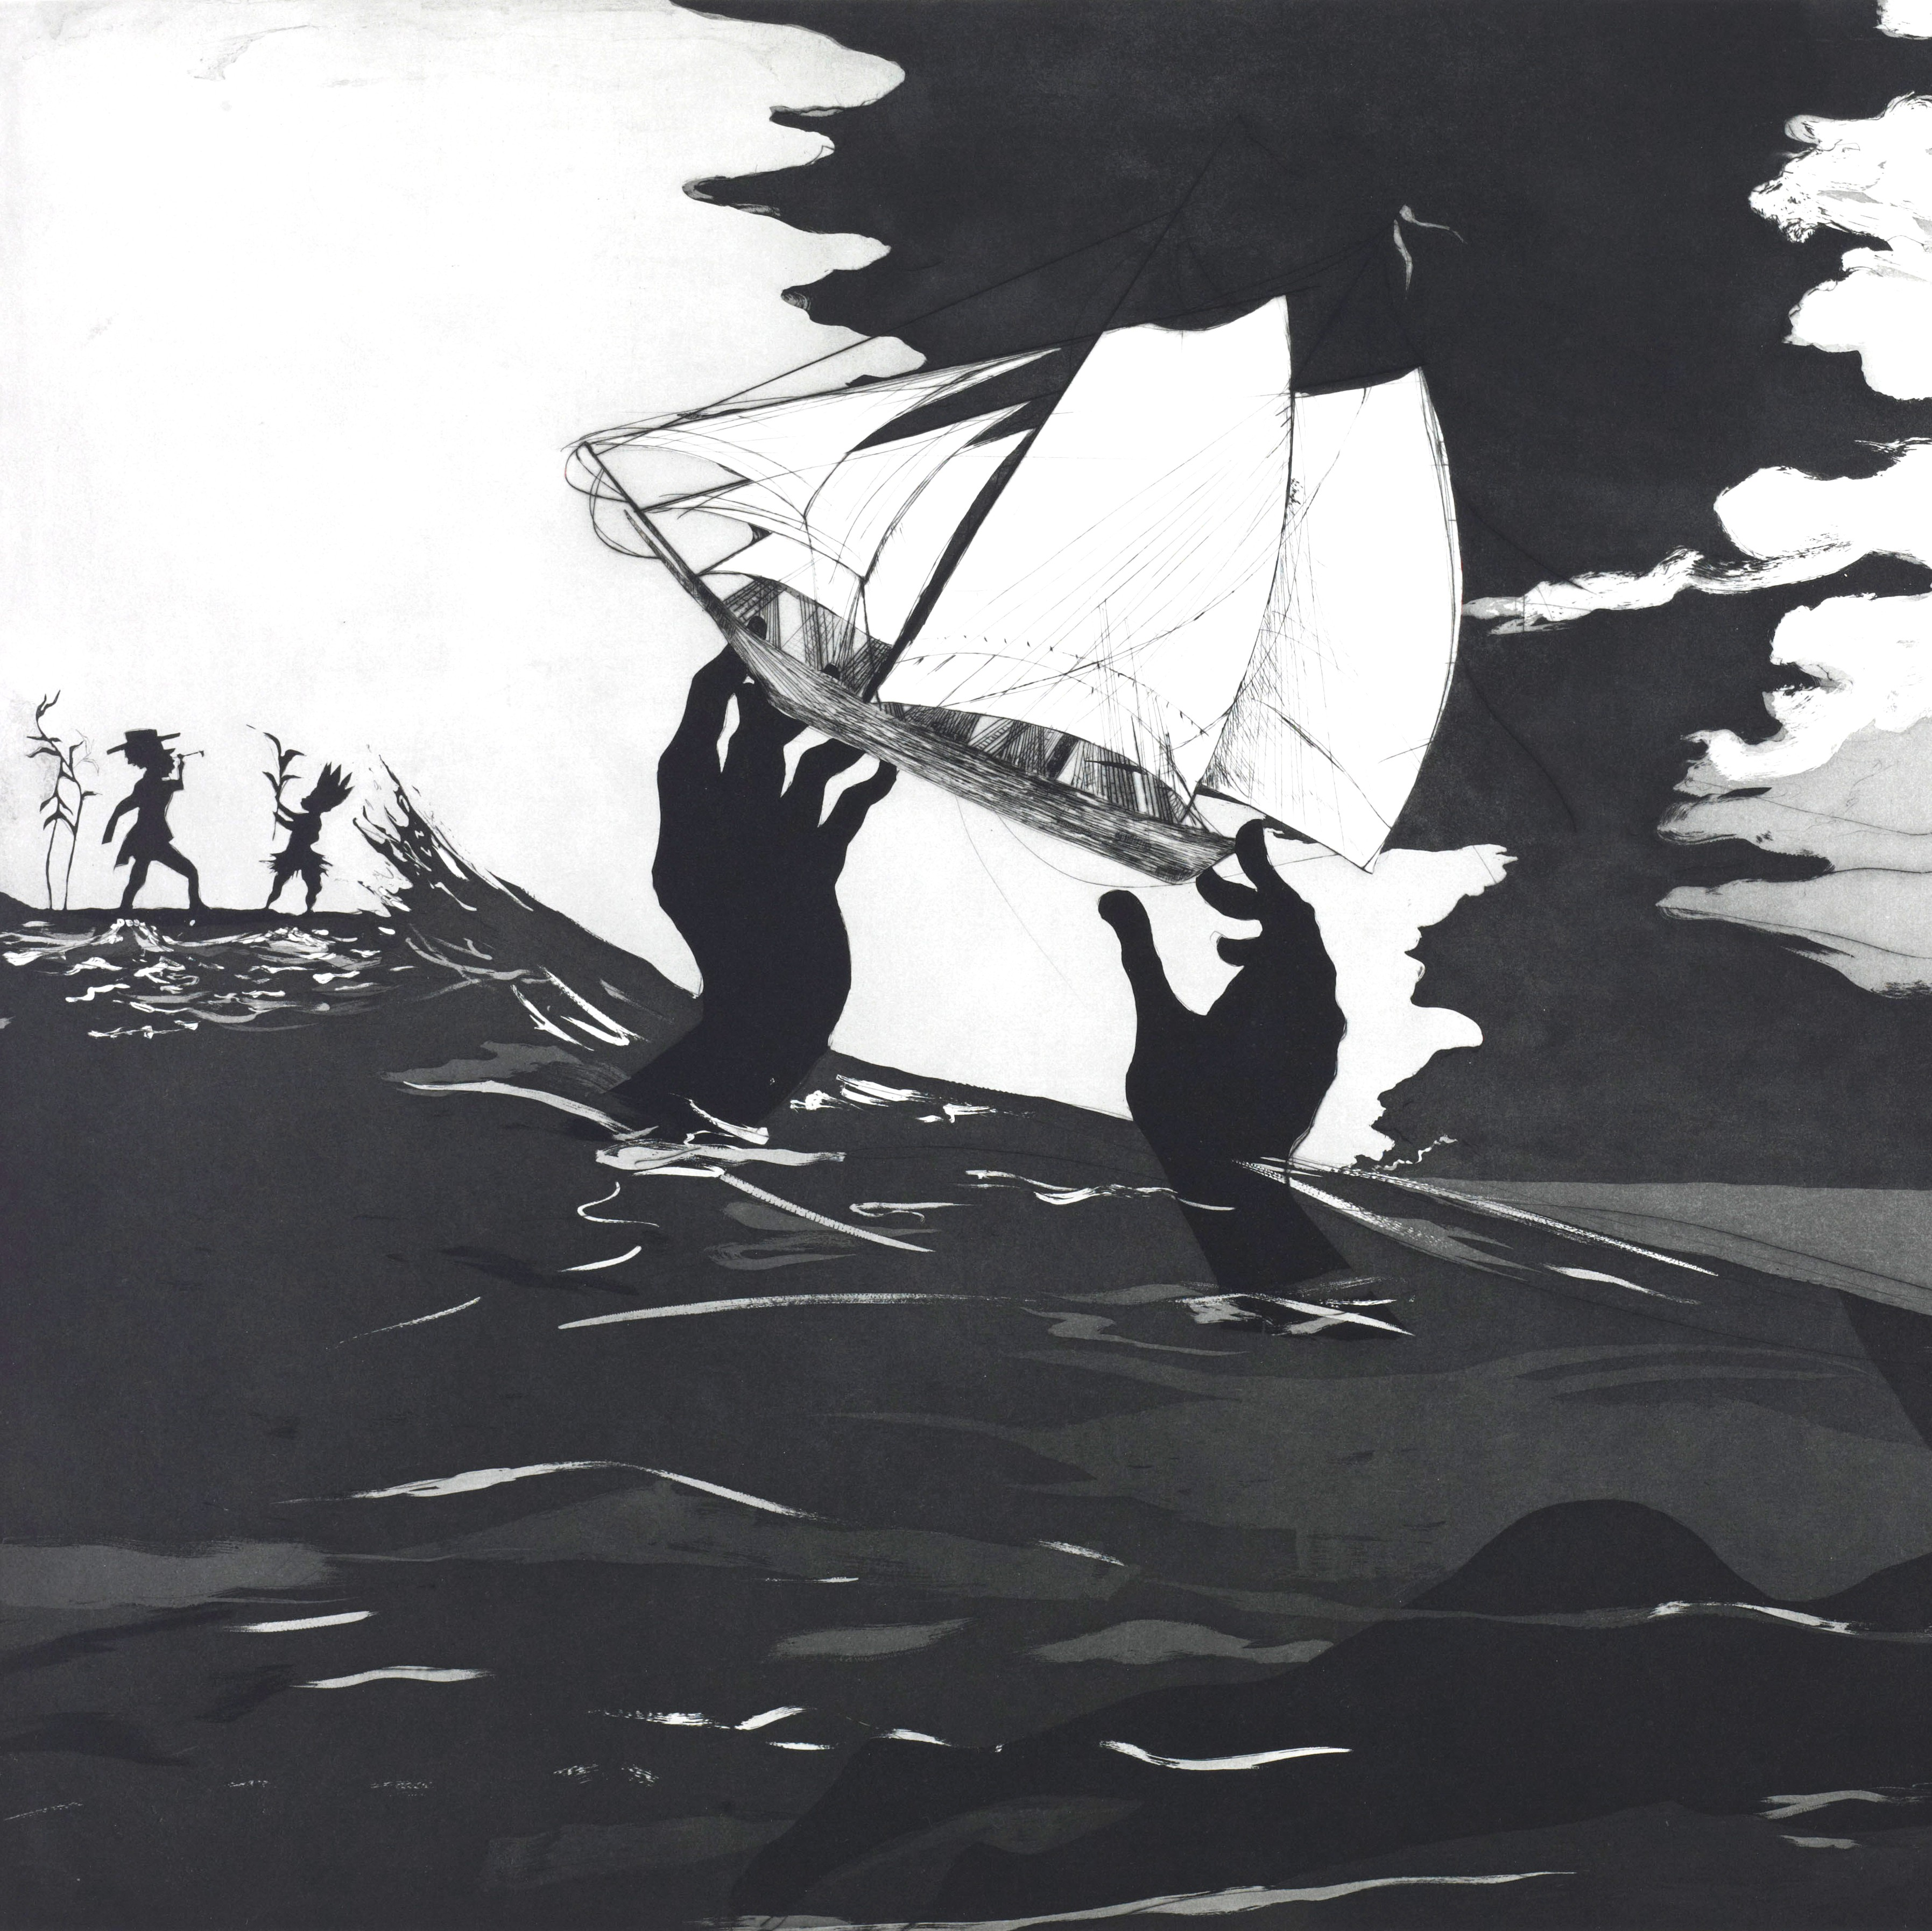 A ship being carried by a pair of hands emerging from a choppy ocean apparently towards land on which two silhouetted figures can be seen standing